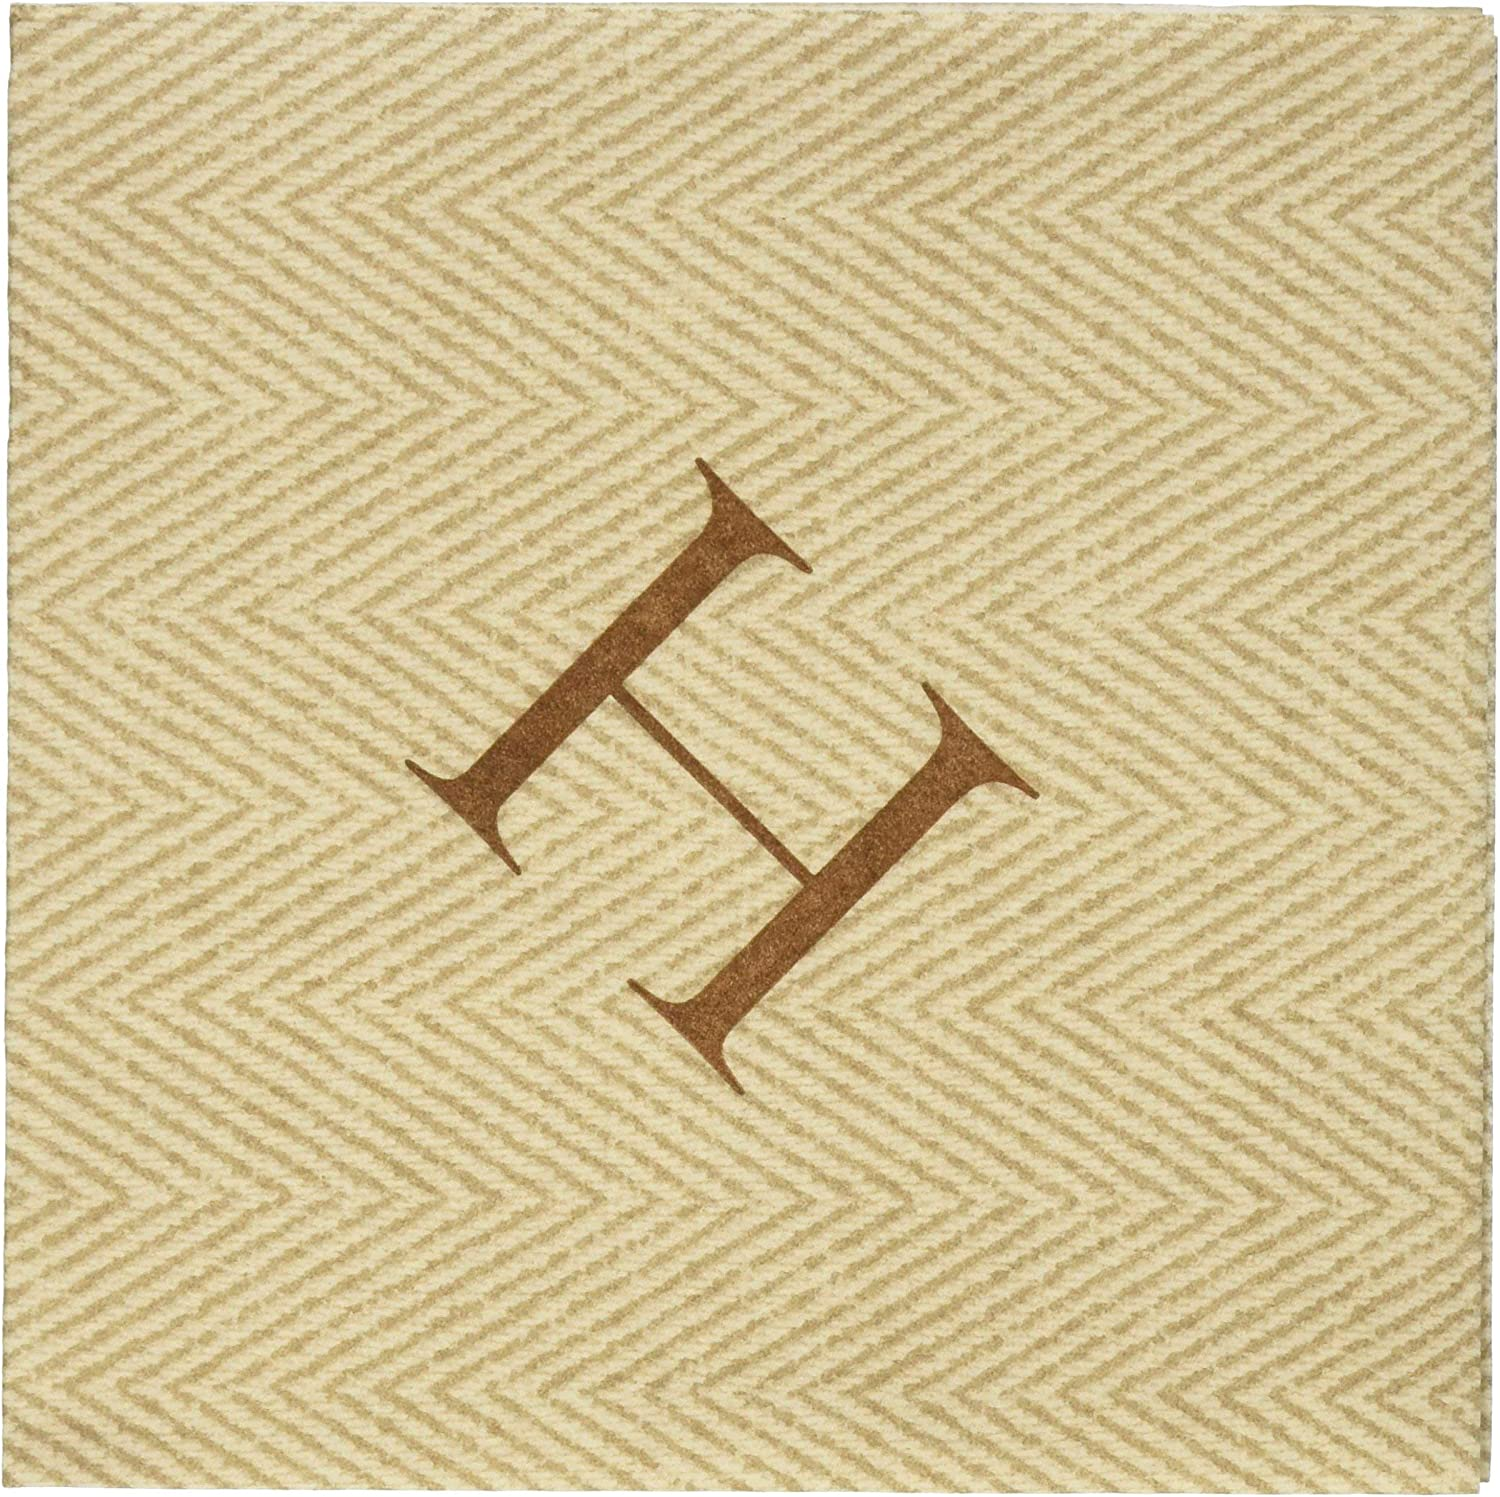 Caspari H Natural Jute Paper Linen Boxed Cocktail Napkins in Letter Pack of 30